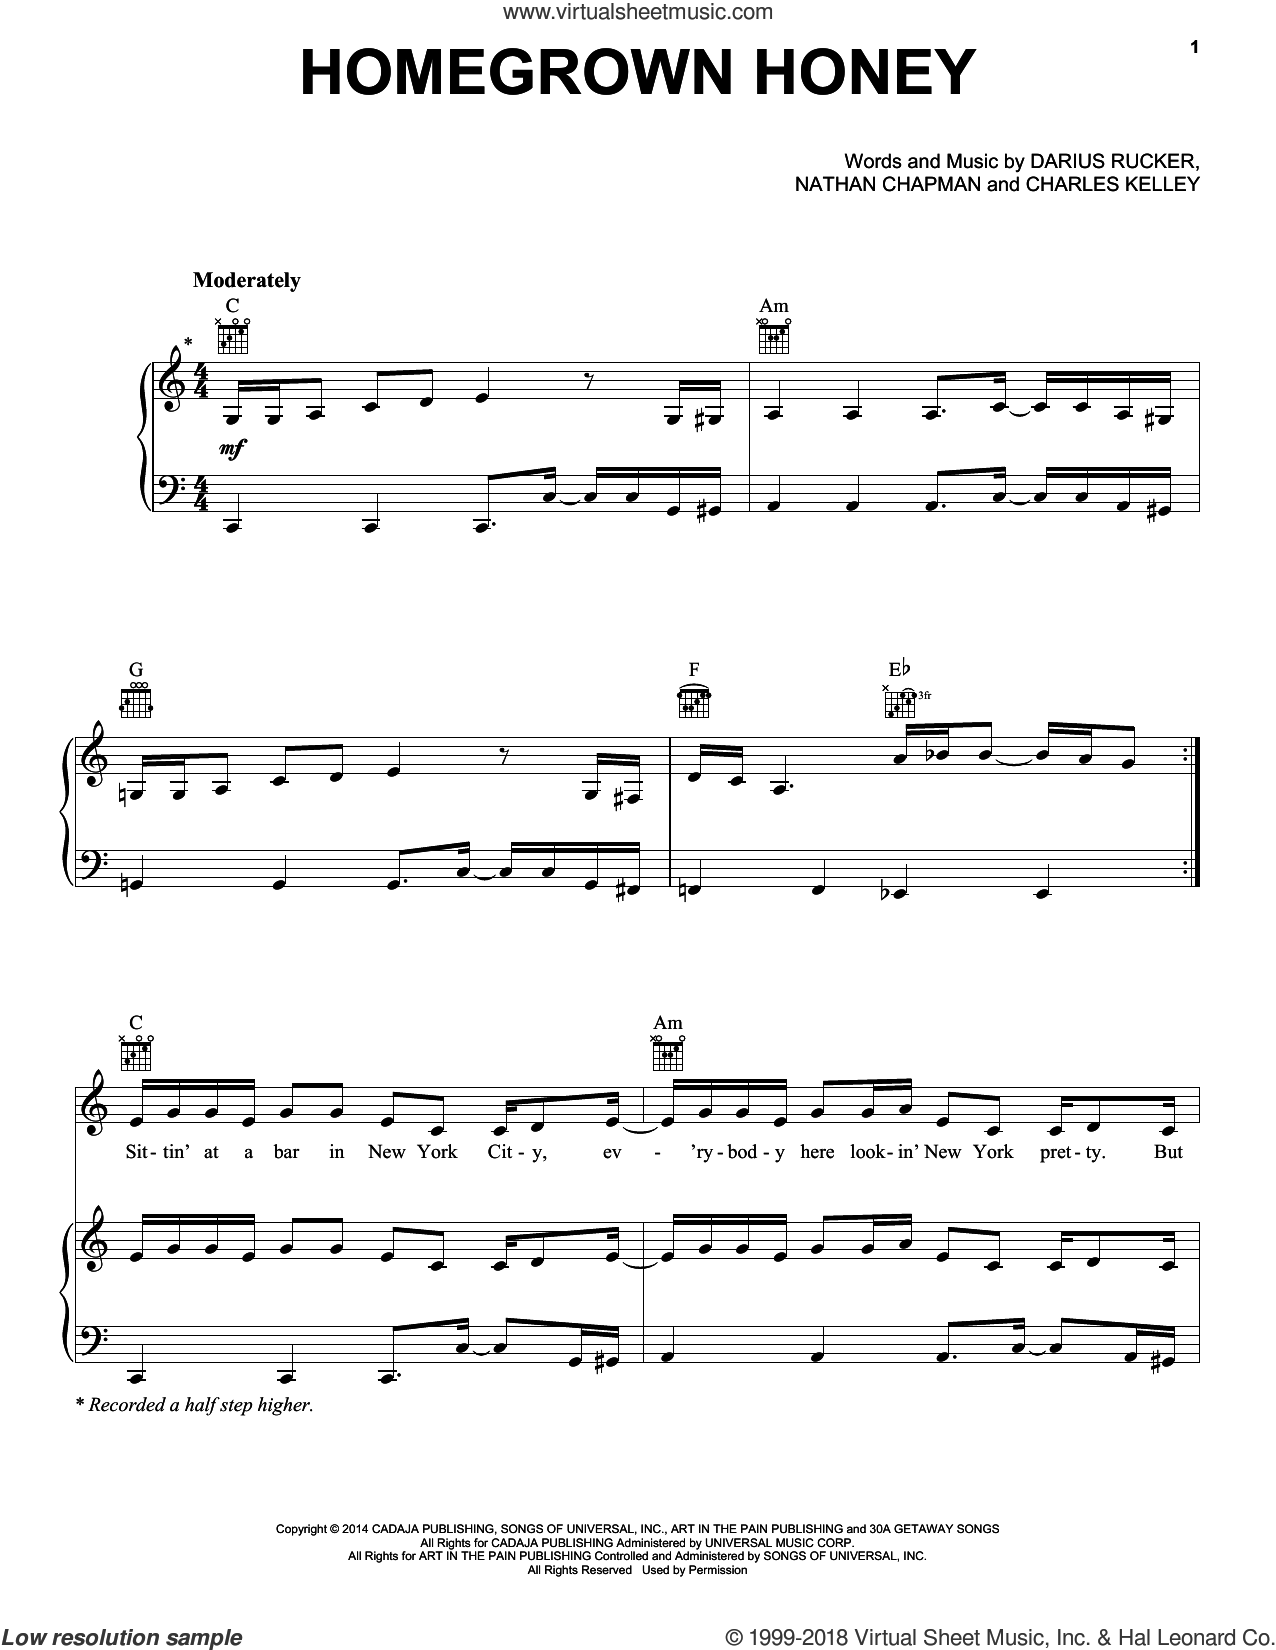 Homegrown Honey sheet music for voice, piano or guitar by Nathan Chapman